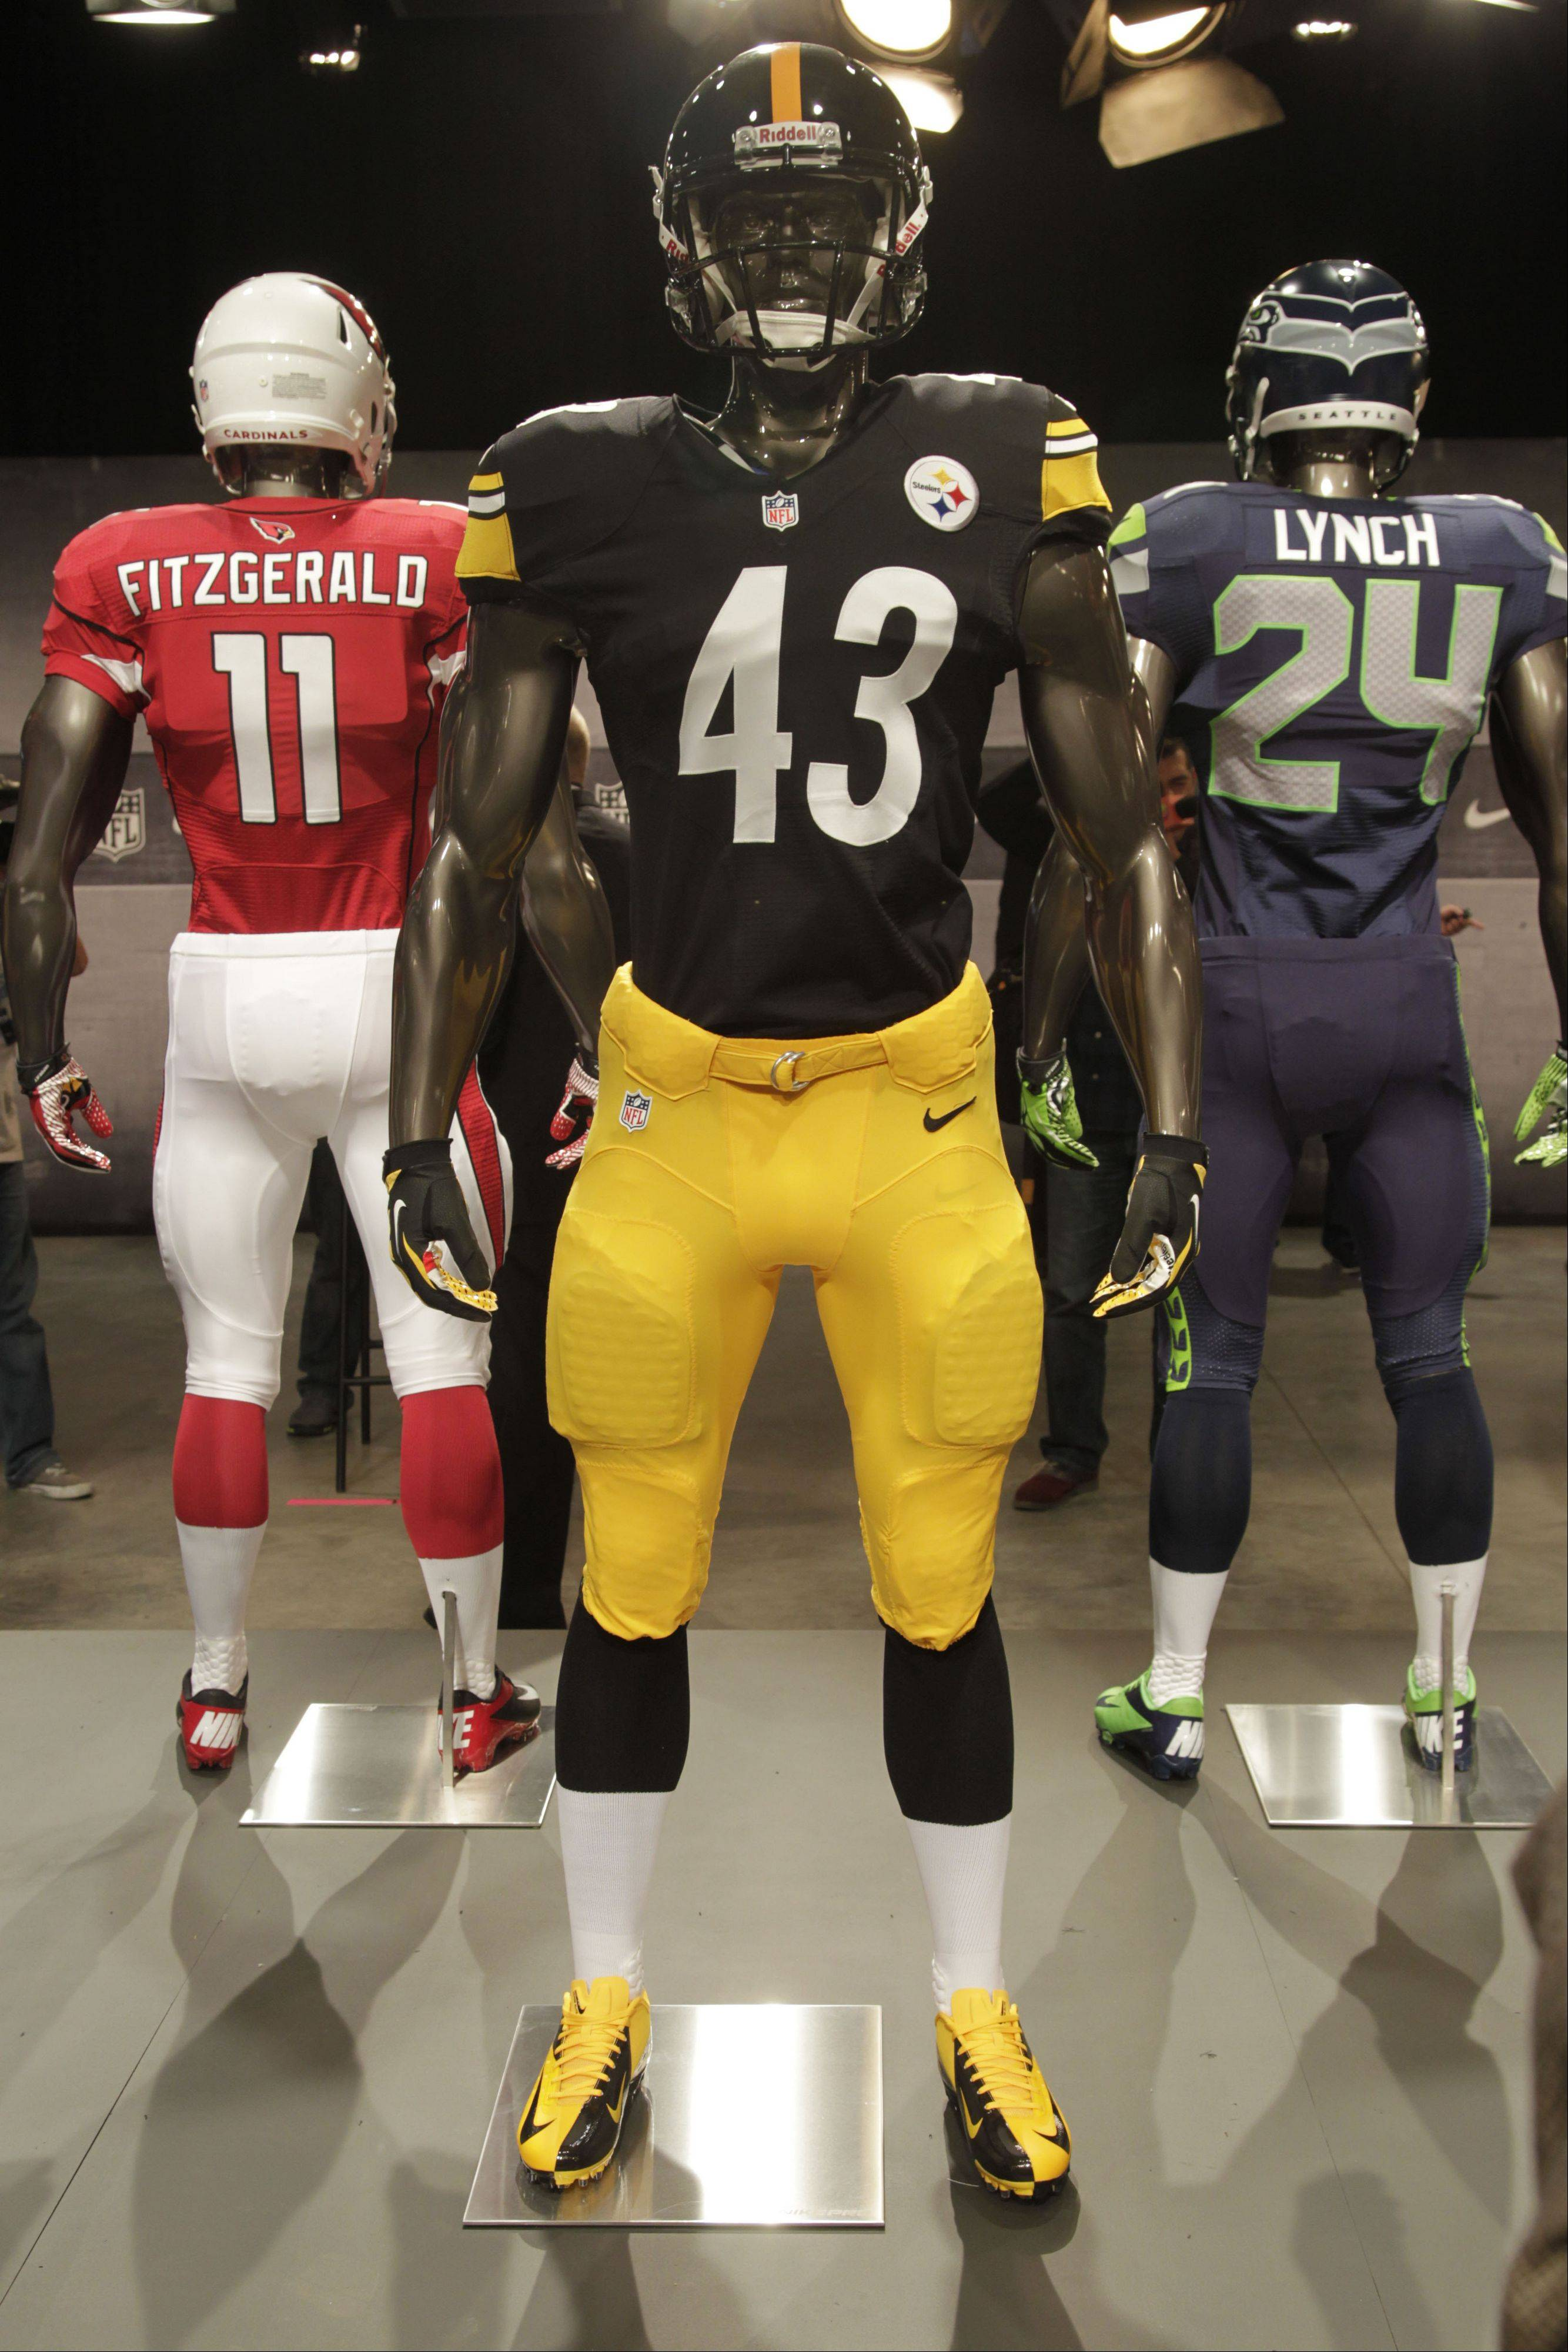 The new Pittsburgh Steelers uniform is displayed on a mannequin in New York, Tuesday, April 3, 2012. NFL has unveiled its new sleek uniforms designed by Nike. While most of the new uniforms are not very different visually, they all are made with new technology that make them lighter, dryer and more comfortable.